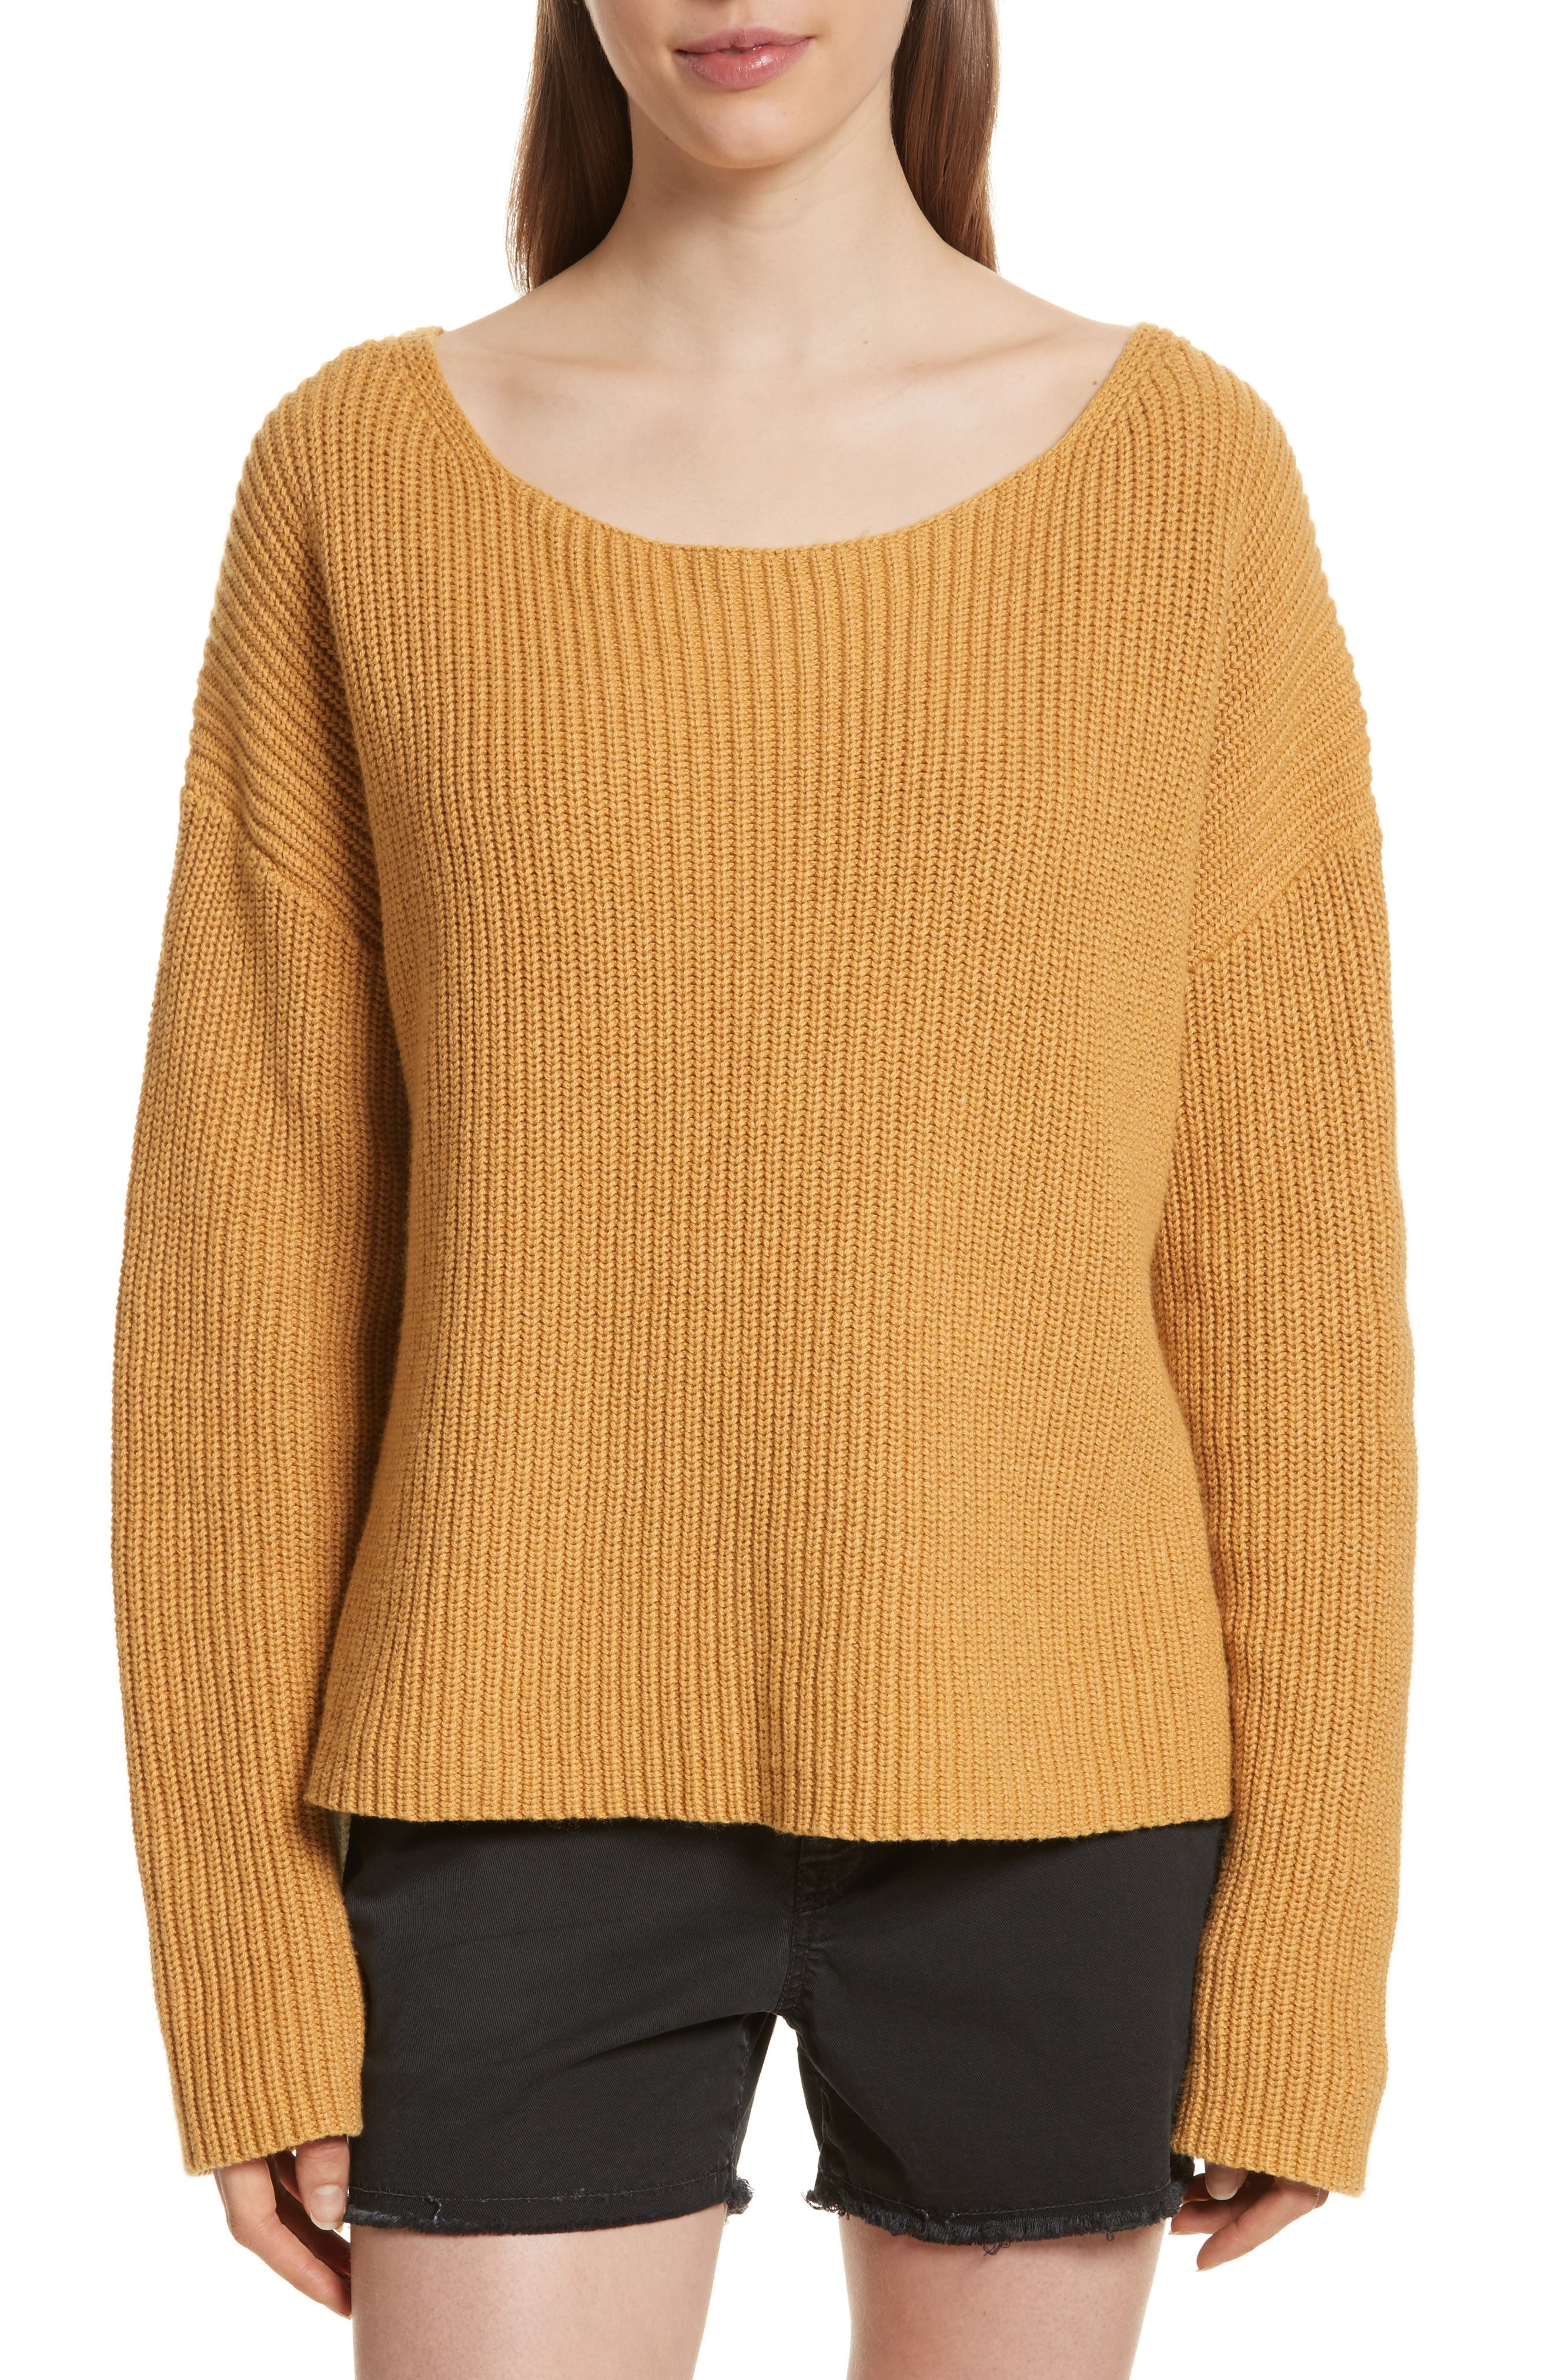 Martindale Ribbed Cotton, Cashmere & Silk Sweater,                             Main thumbnail 1, color,                             Mustard